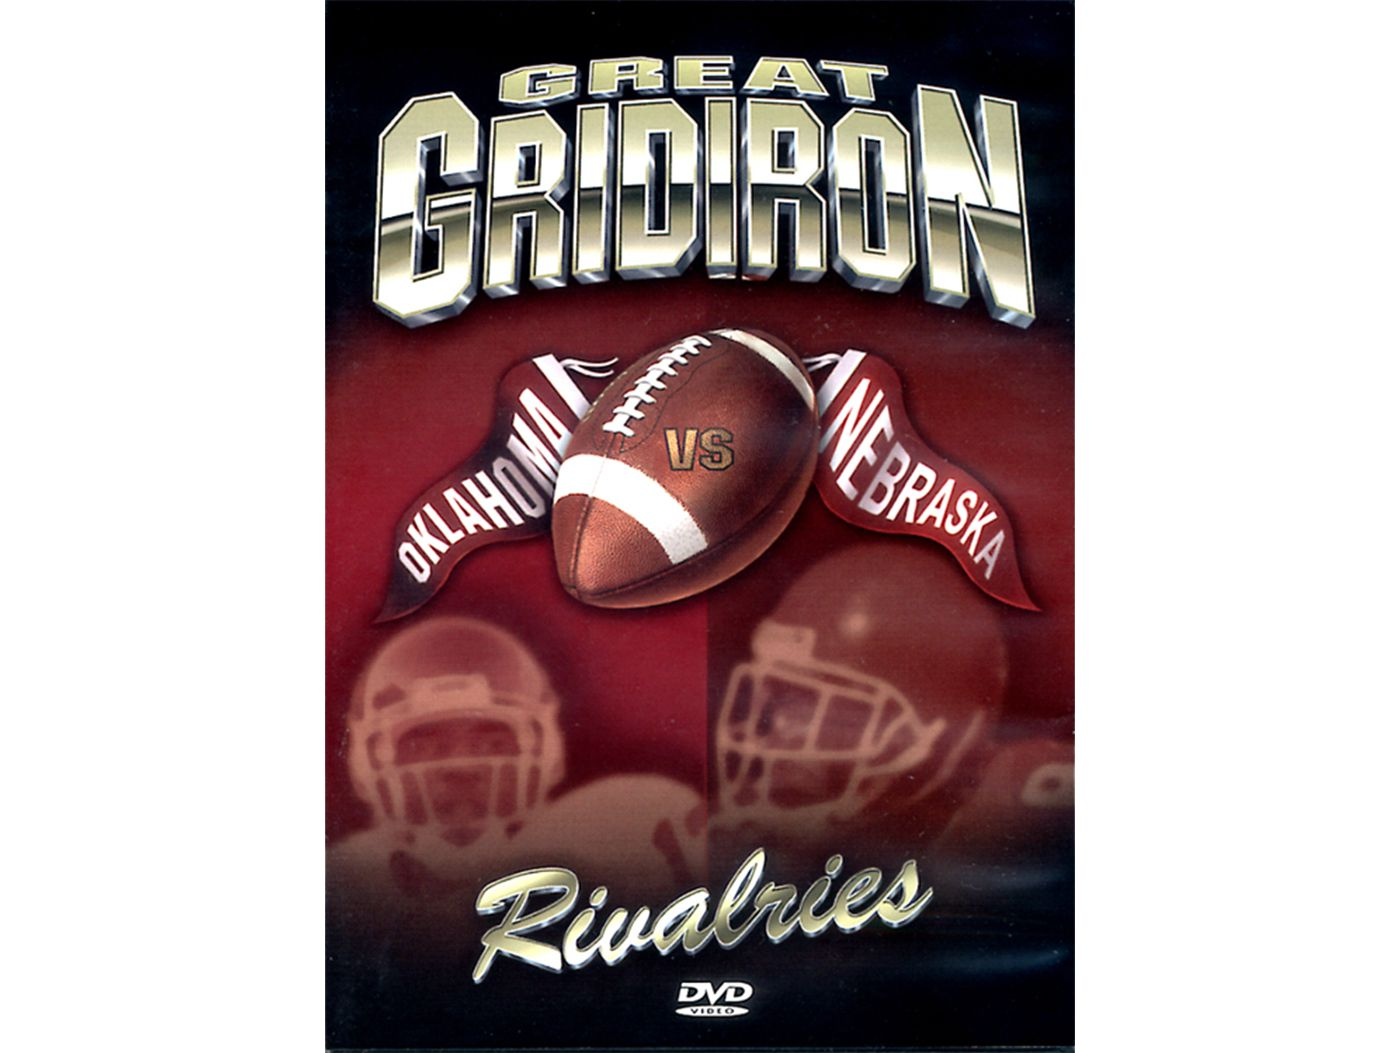 Great Gridiron Rivalries: Oklahoma vs. Nebraska DVD